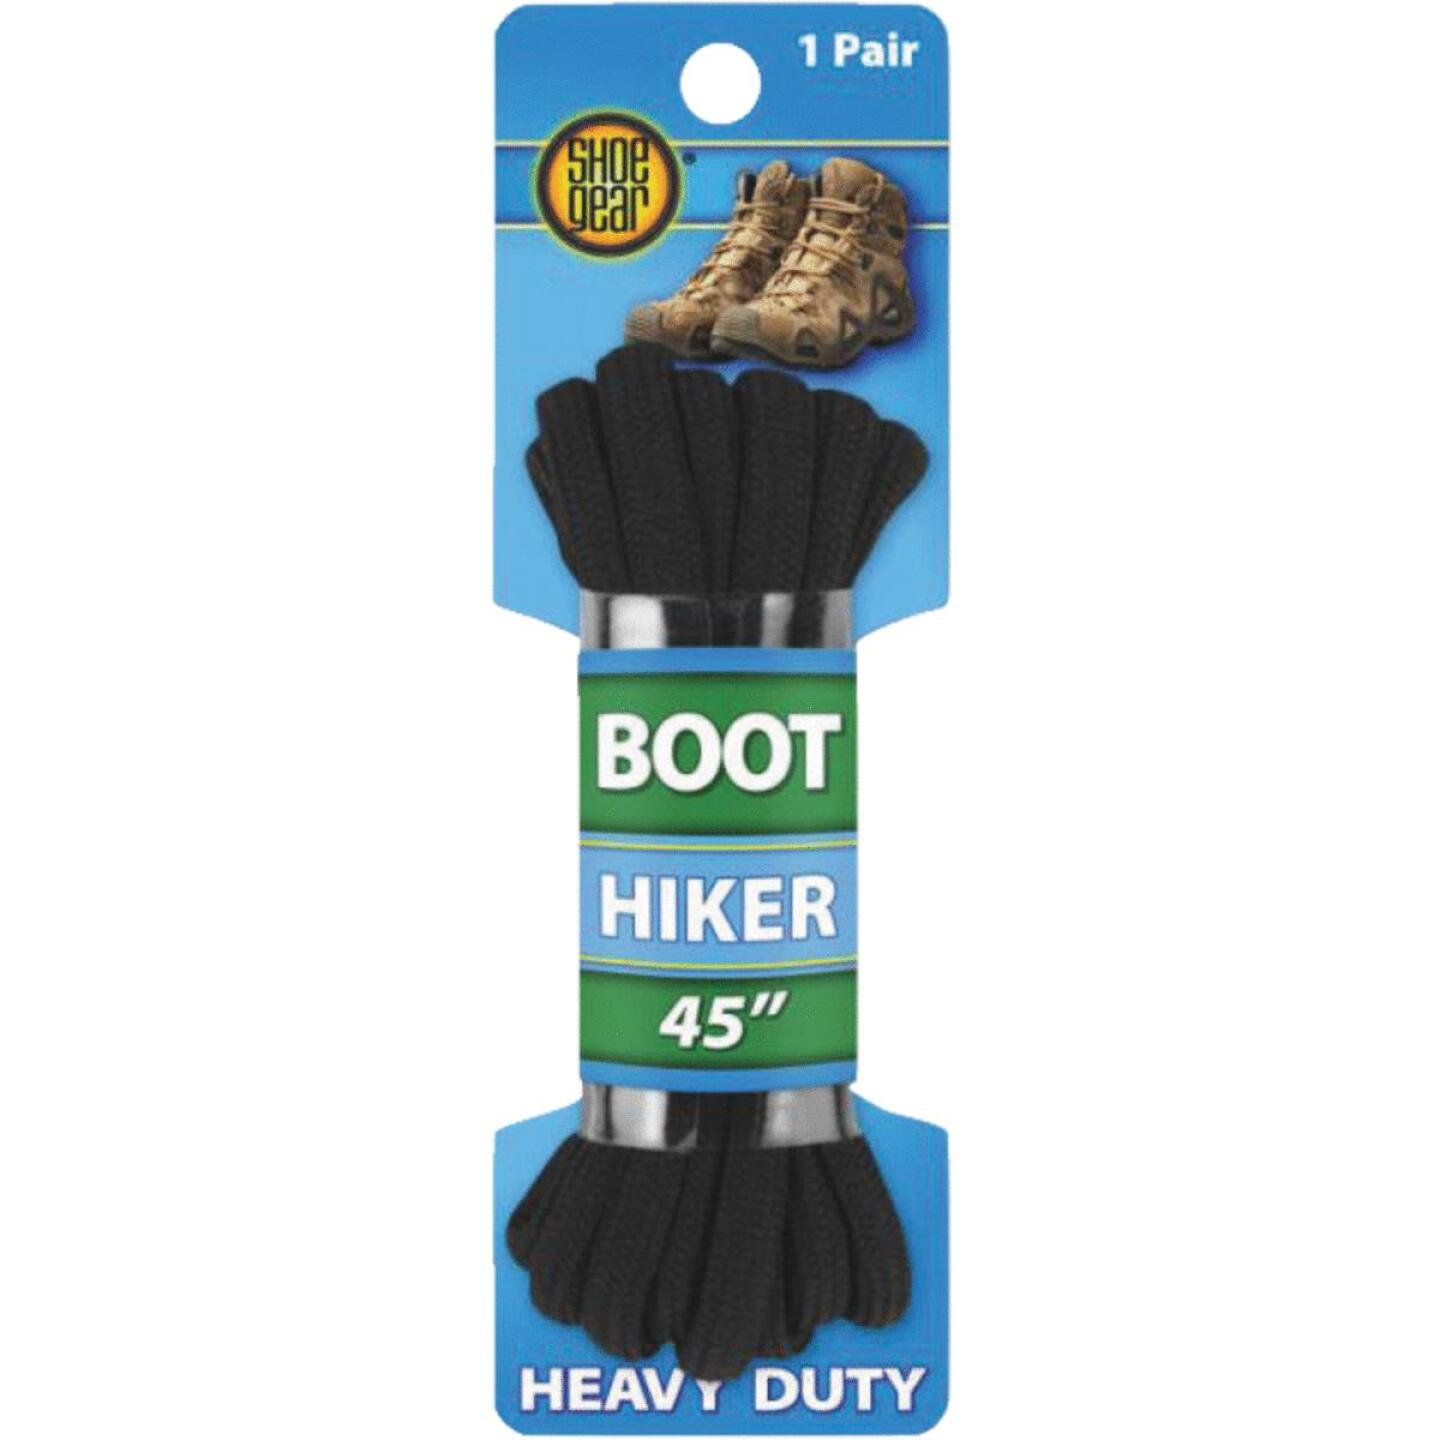 Shoe Gear Alpine 45 In. Round Boot Laces Image 1